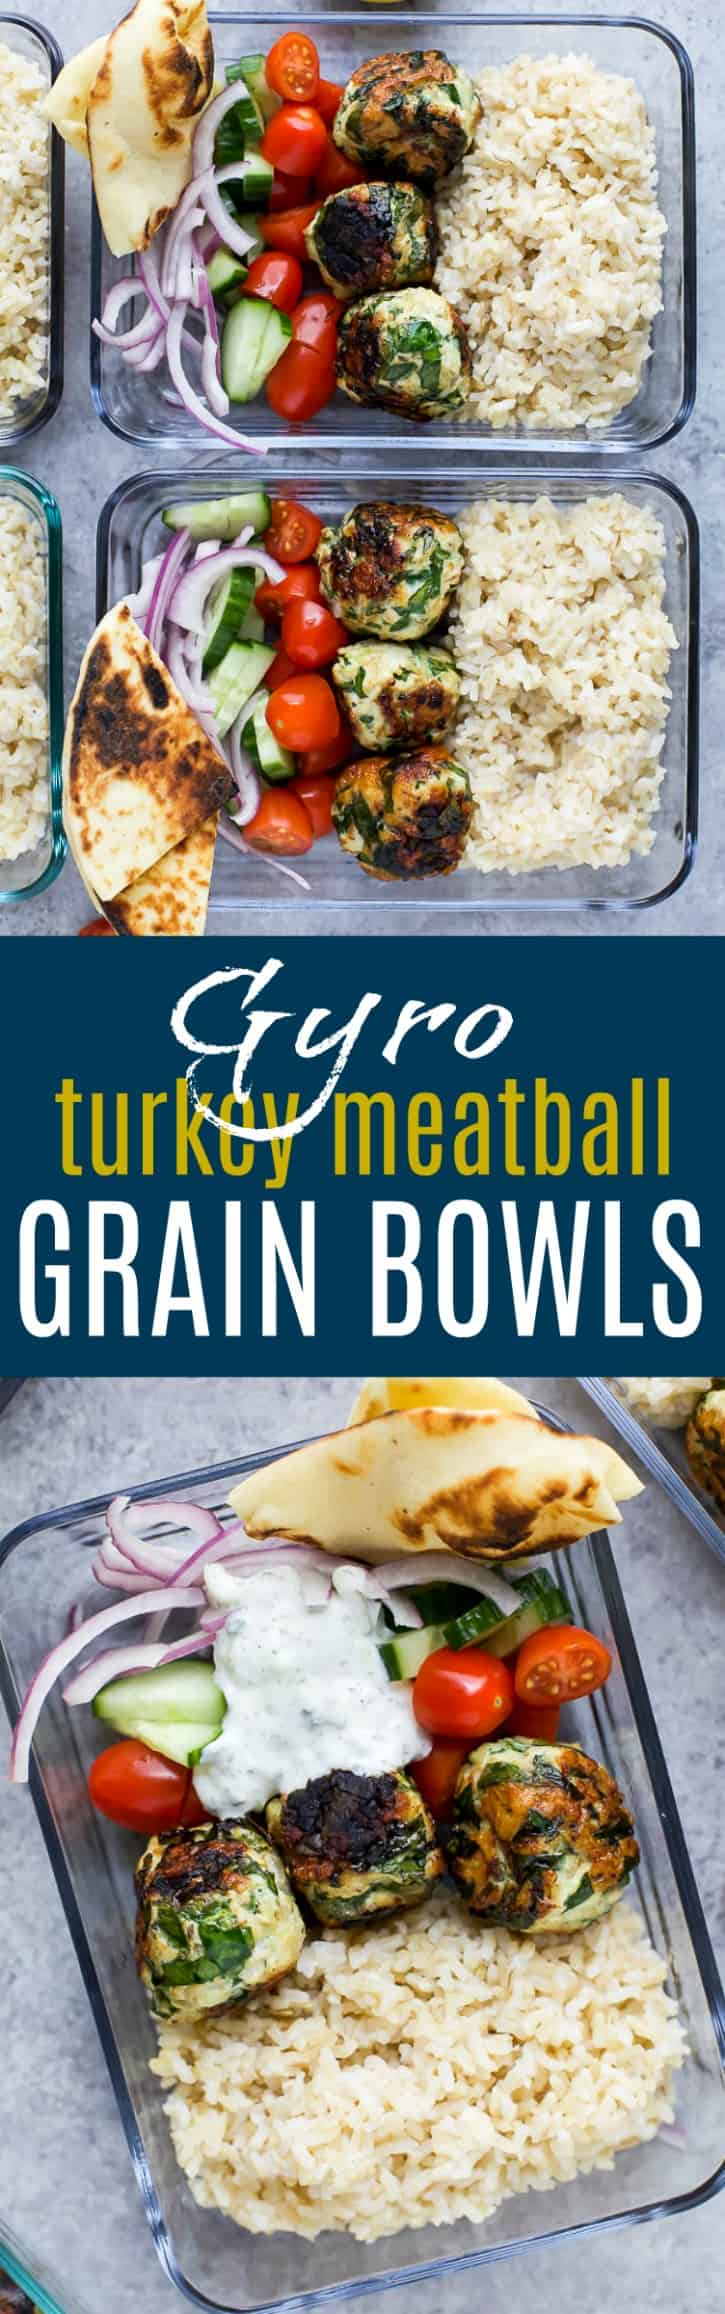 Gyro Turkey Meatball Grain Bowls drizzled in a creamy Tzatziki sauce make the perfect high protein meal prep recipe or weeknight dinner, only 370 calories a serving.